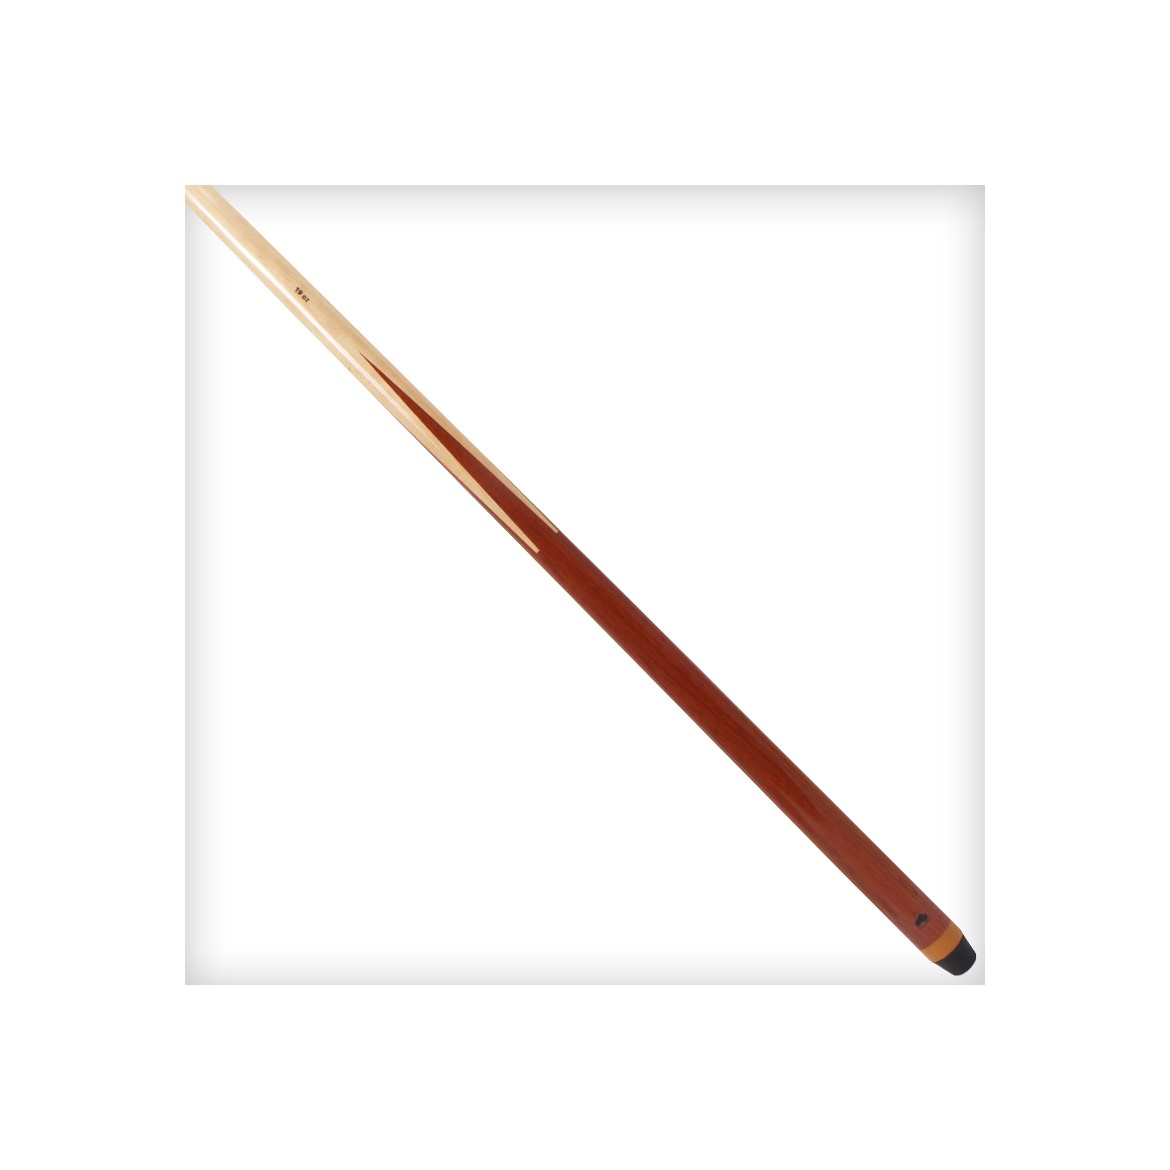 Achat queue de billard hc 1 30 m bois massif billards for Dimension queue de billard